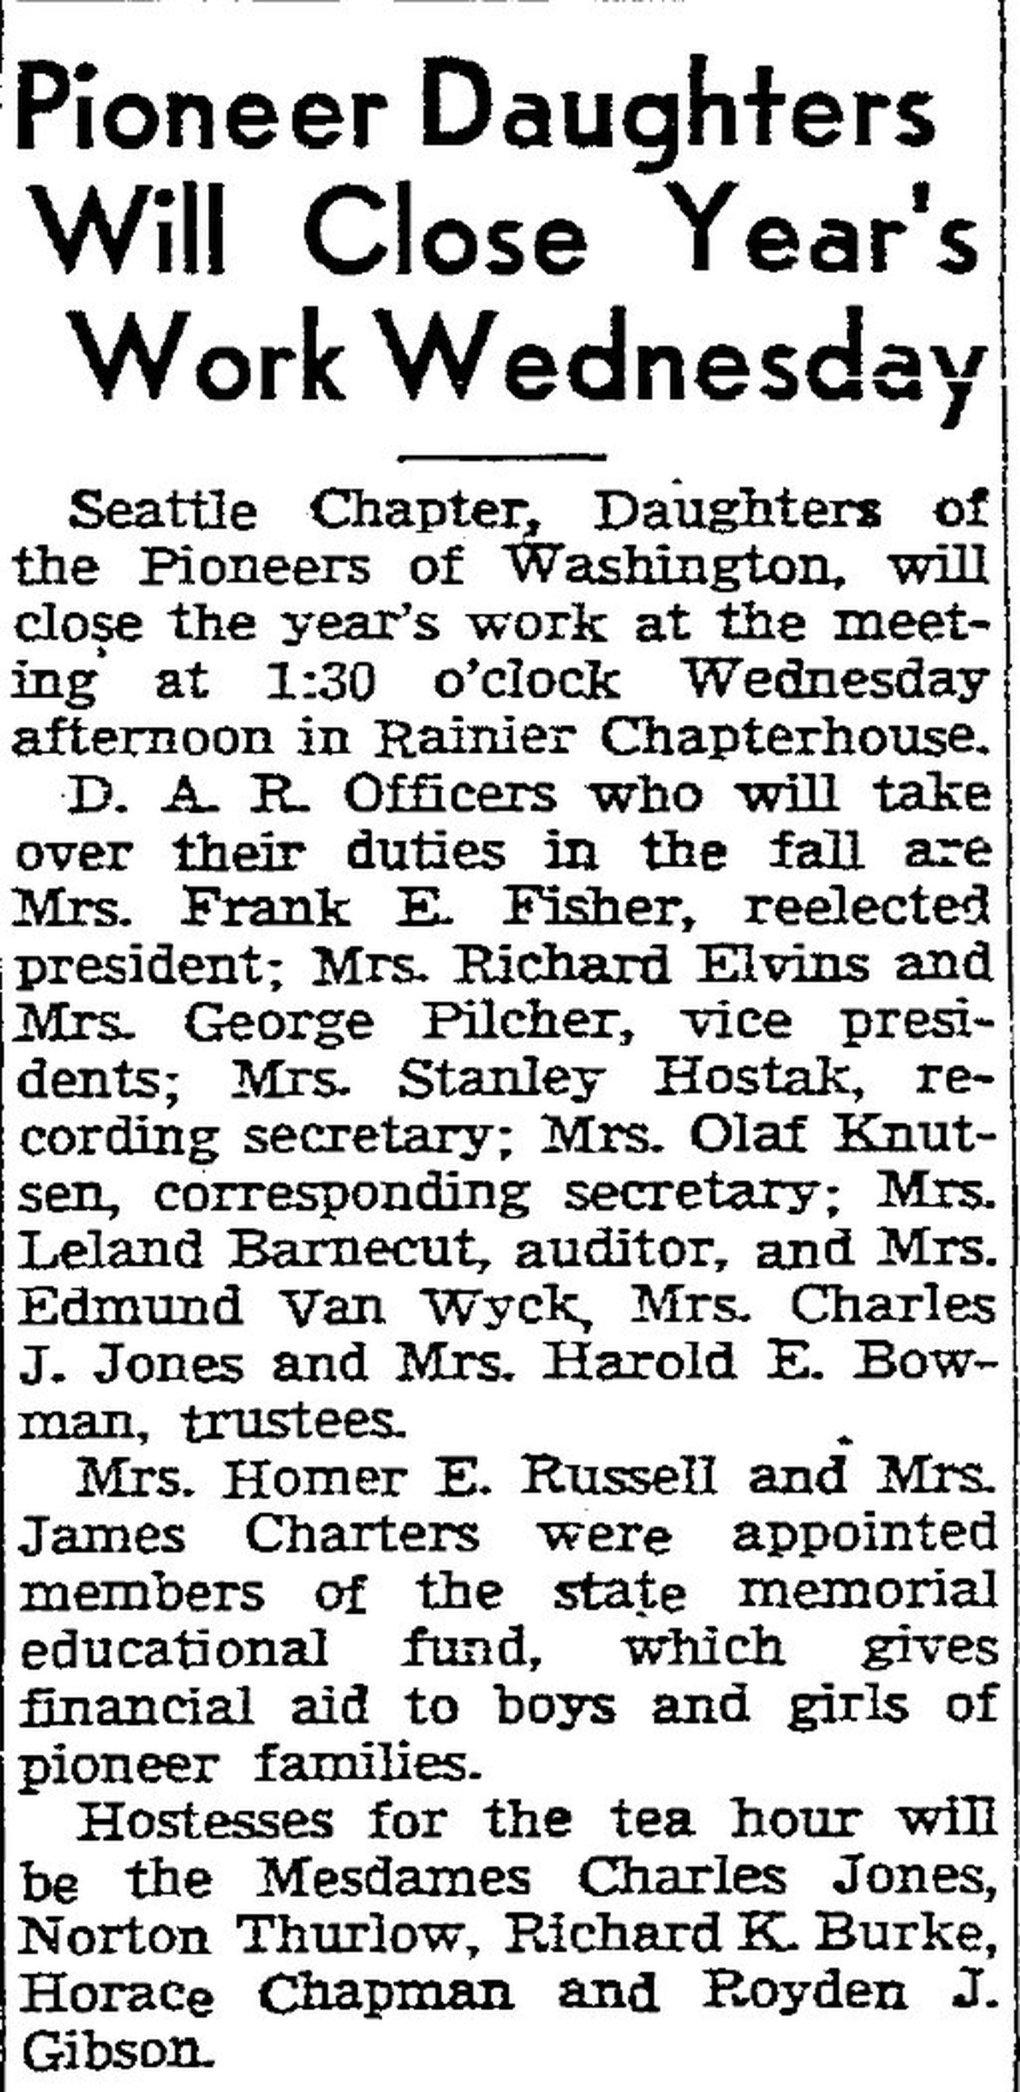 """Rose Gilbreath Charters was an active member in the Seattle chapter of the Daughters of the Pioneers of Washington. Until the women's suffrage movement in the 1970s, married women were rarely referenced in news stories using their first names. Instead, as is shown in this news brief from the June 1, 1947, edition of The Seattle Times, Rose is listed as """"Mrs James Charters."""" (The Seattle Times archive)"""